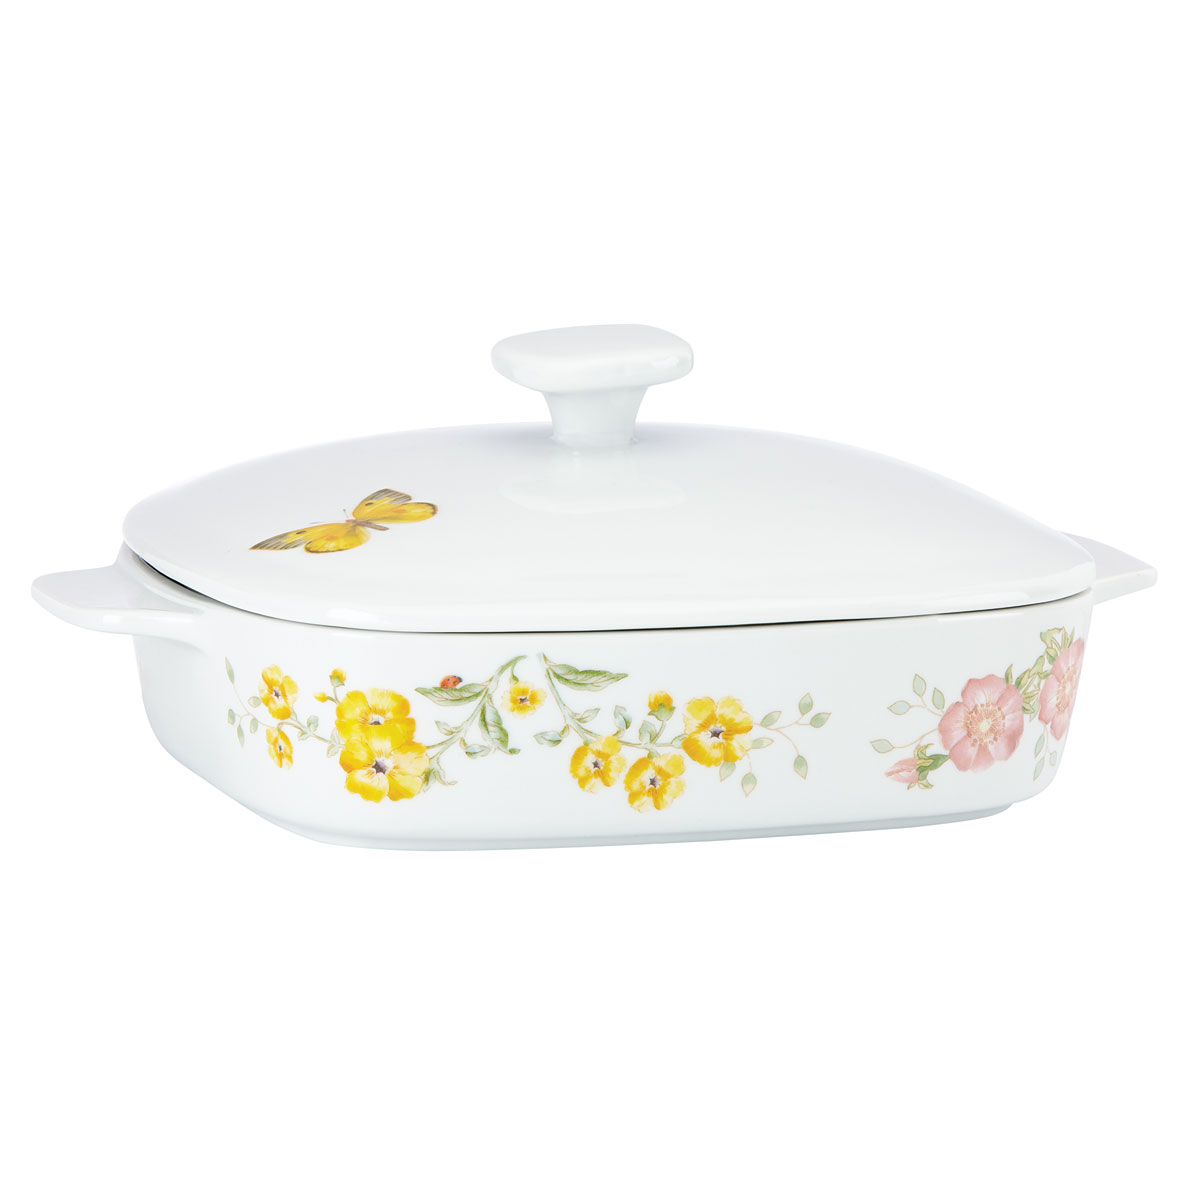 Lenox Butterfly Meadow Bakeware Covered Casserole